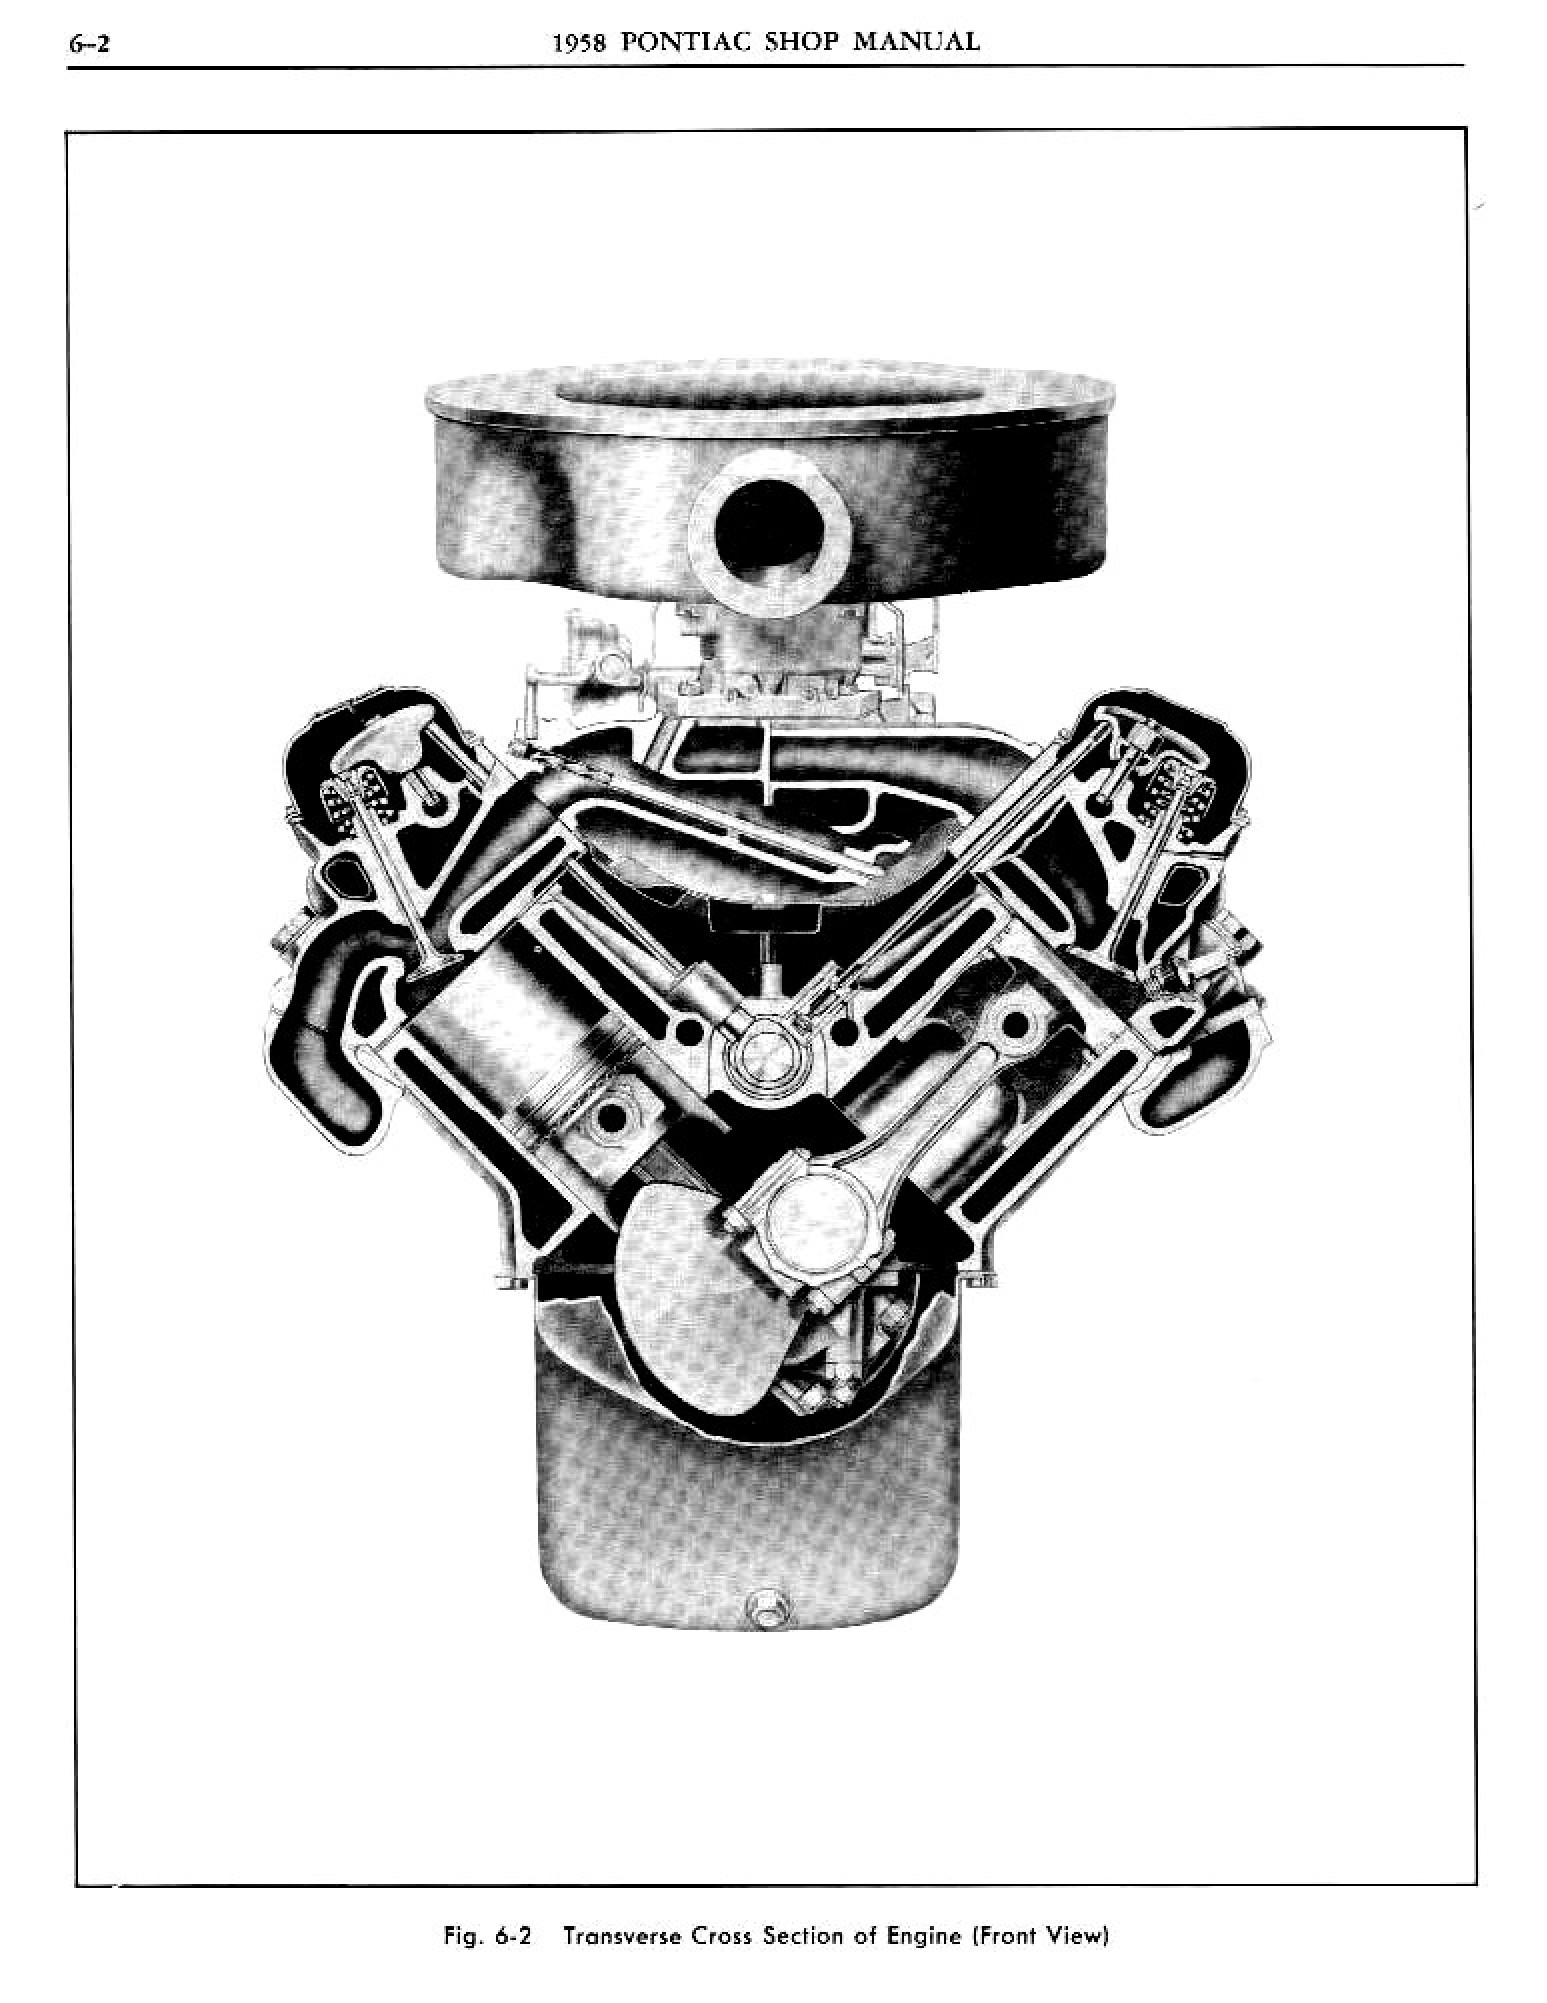 1958 Pontiac Shop Manual- Engine Page 3 of 51